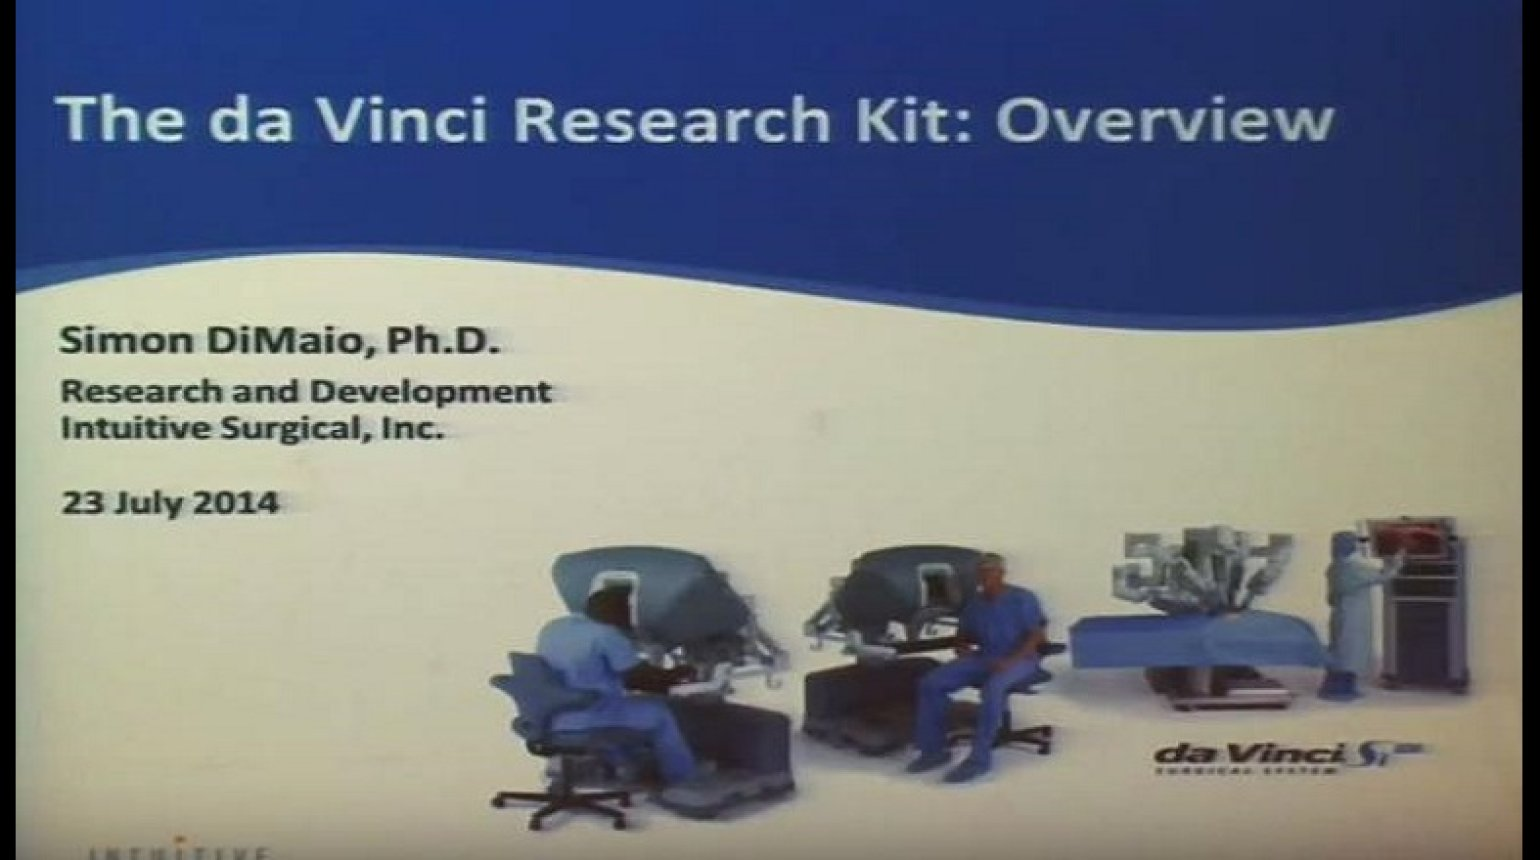 Shared research platforms and frameworks- daVinci Research Kit